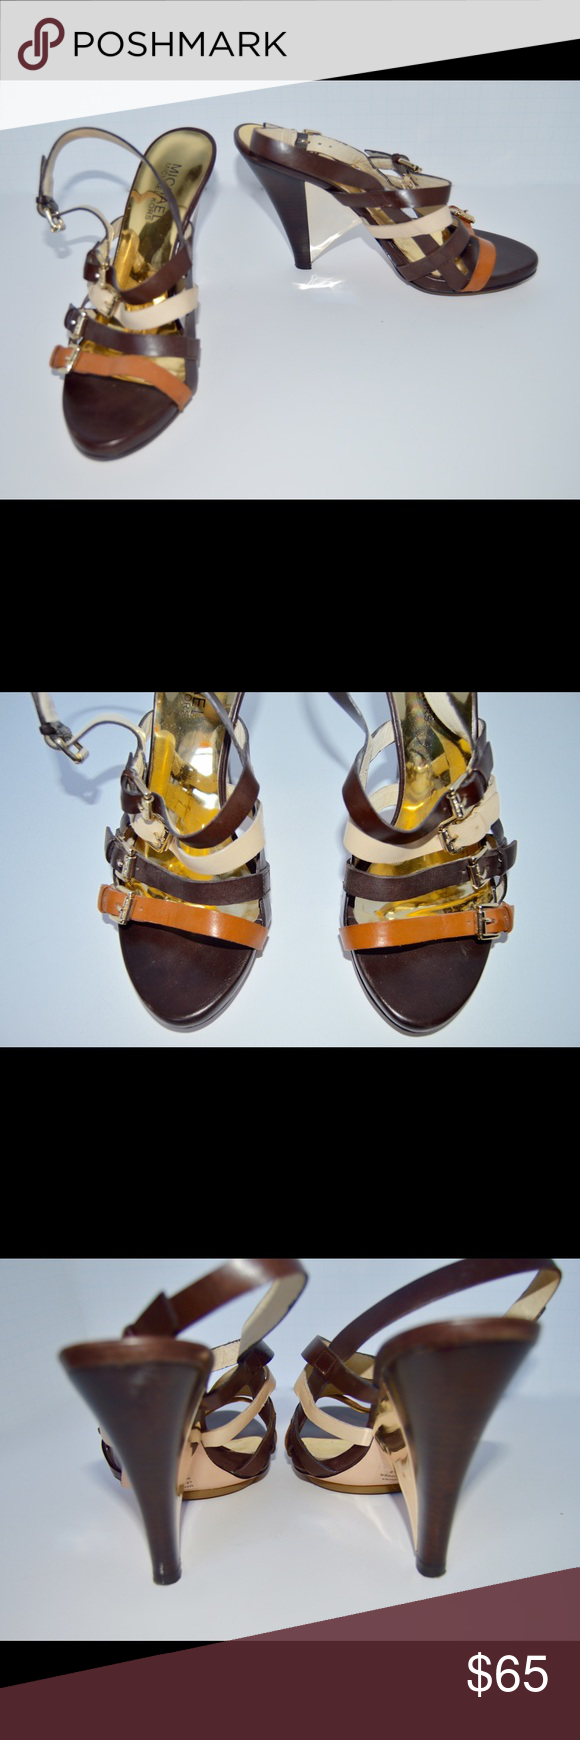 Michael Kors Heels Michael Kors Heels in great condition! Comment any questions you may have! Michael Kors Shoes Heels